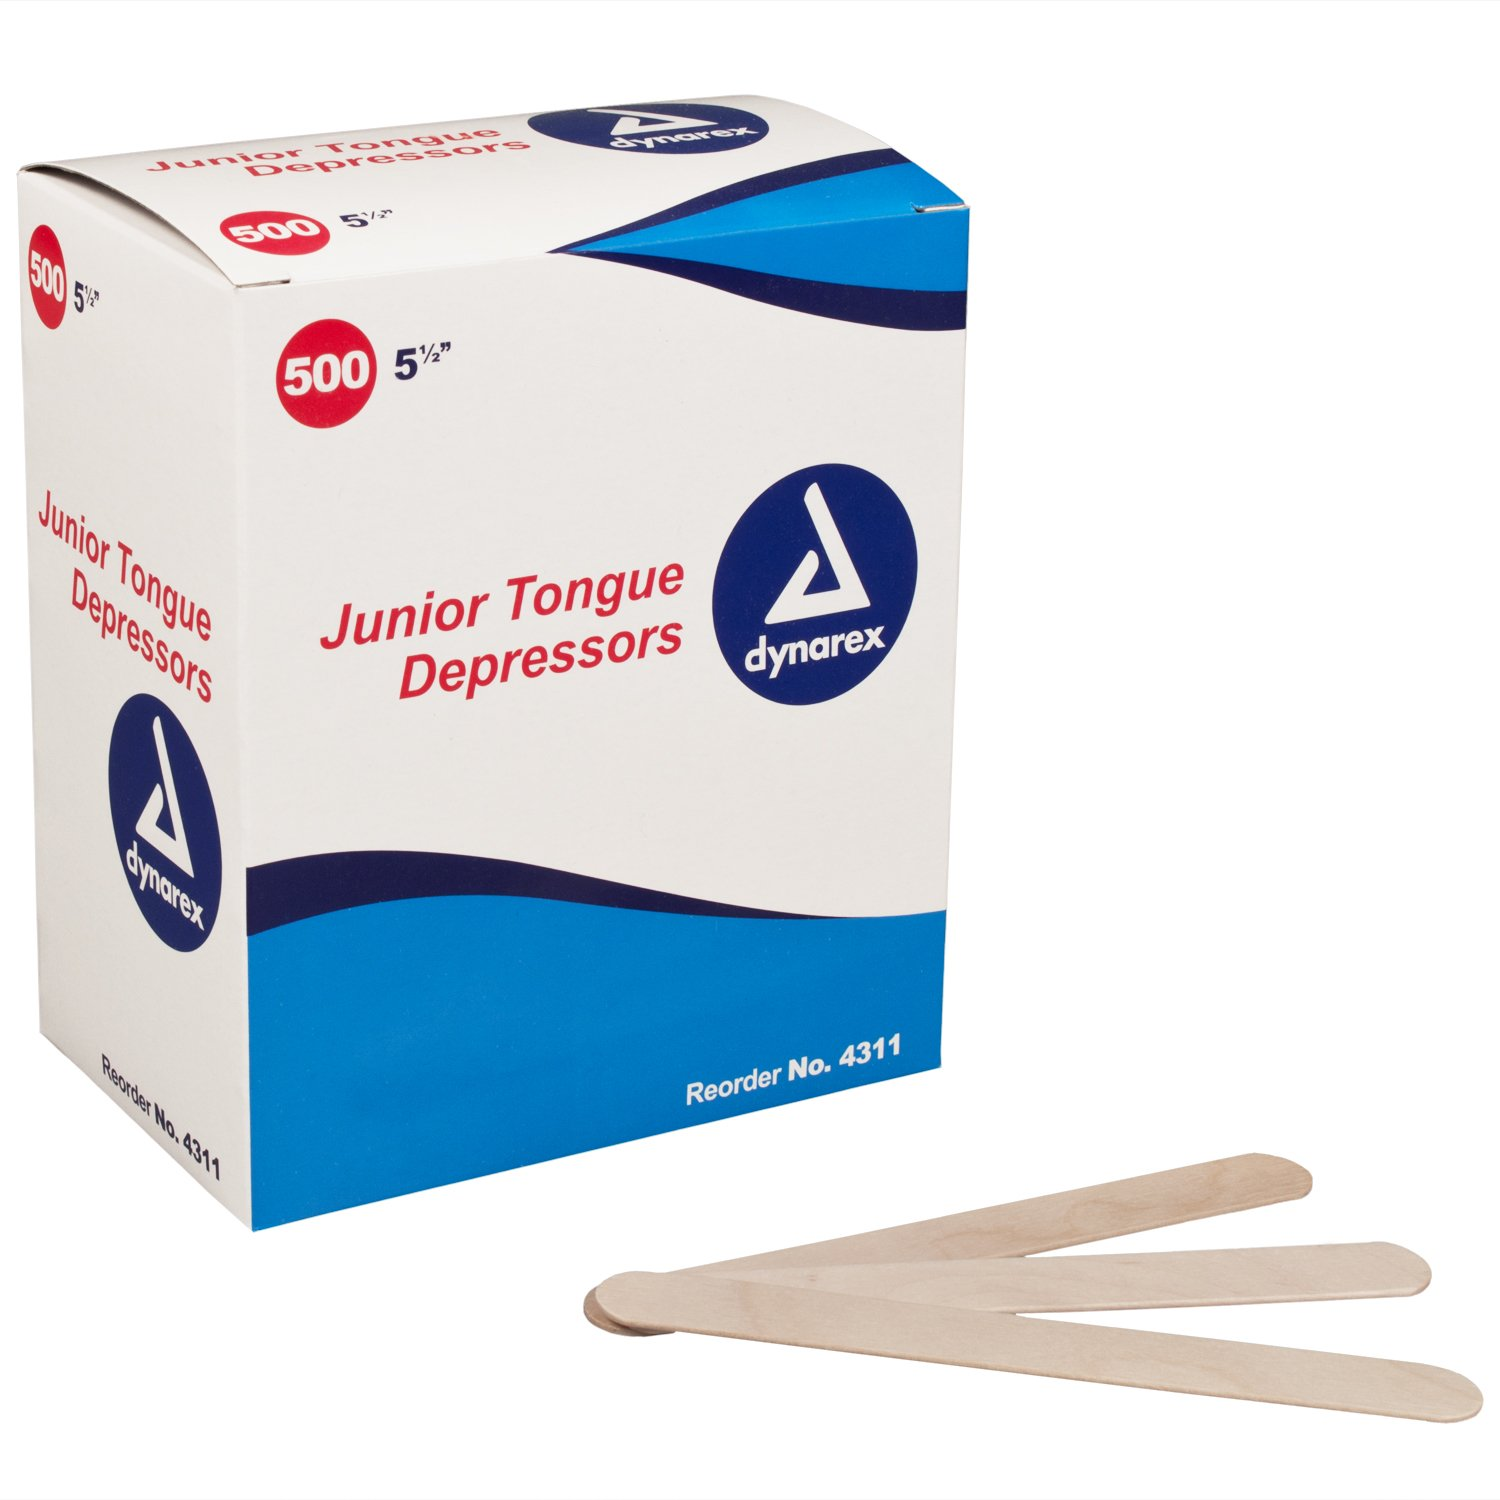 Dynarex 5 1/2 Inches Tongue Depressor Non-sterile Junior - 500 Ea